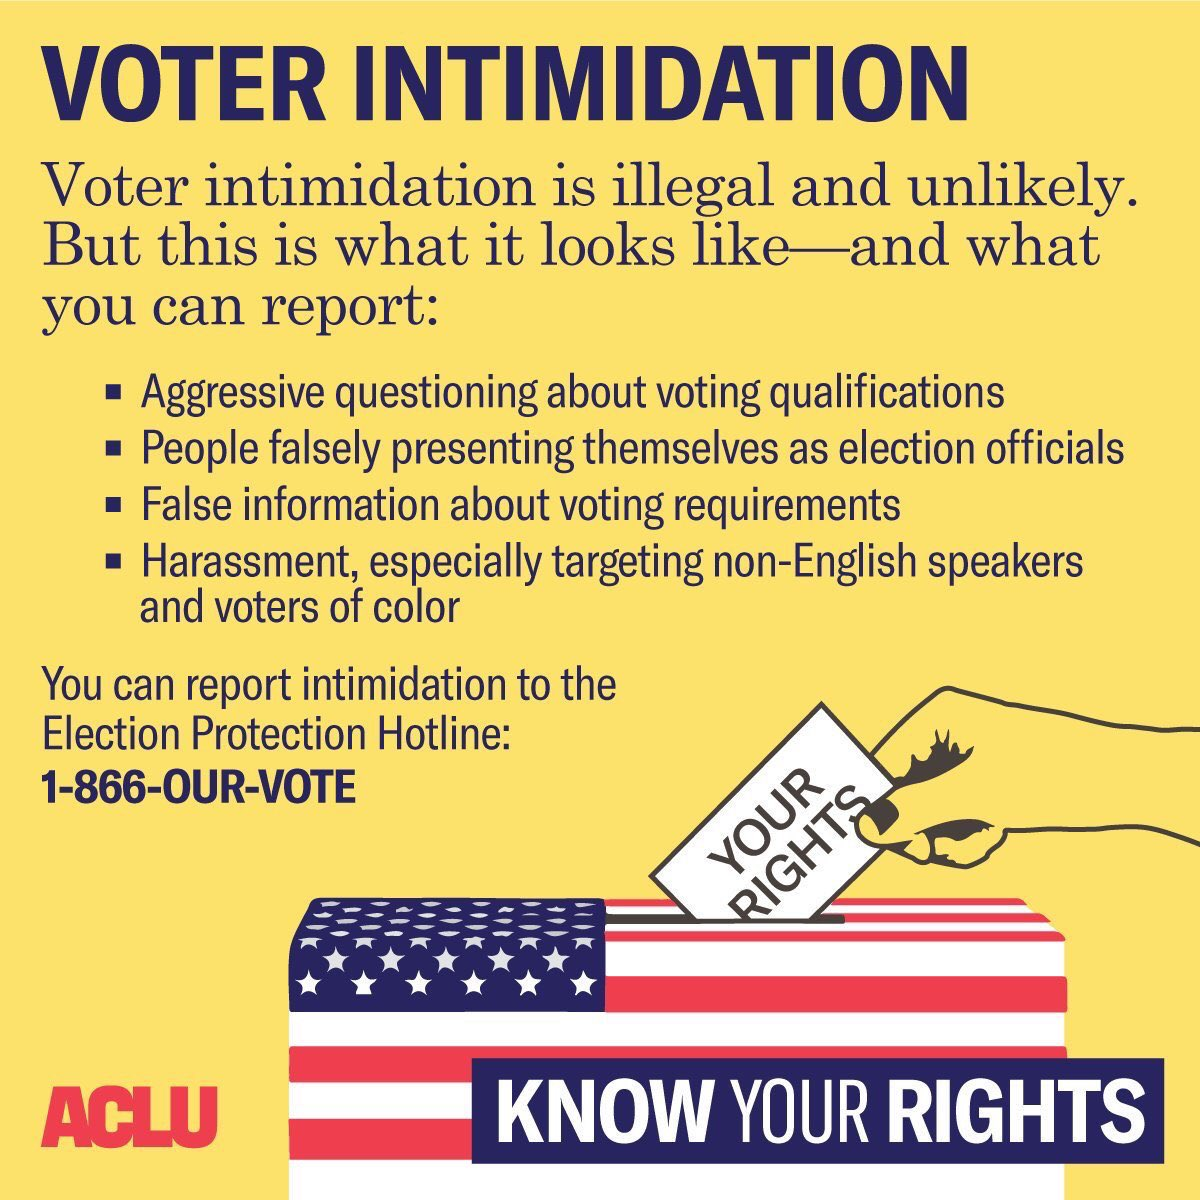 Know your rights. If you need to report anything call 1-866-OUR-VOTE. https://t.co/5ZQ64CSr7p